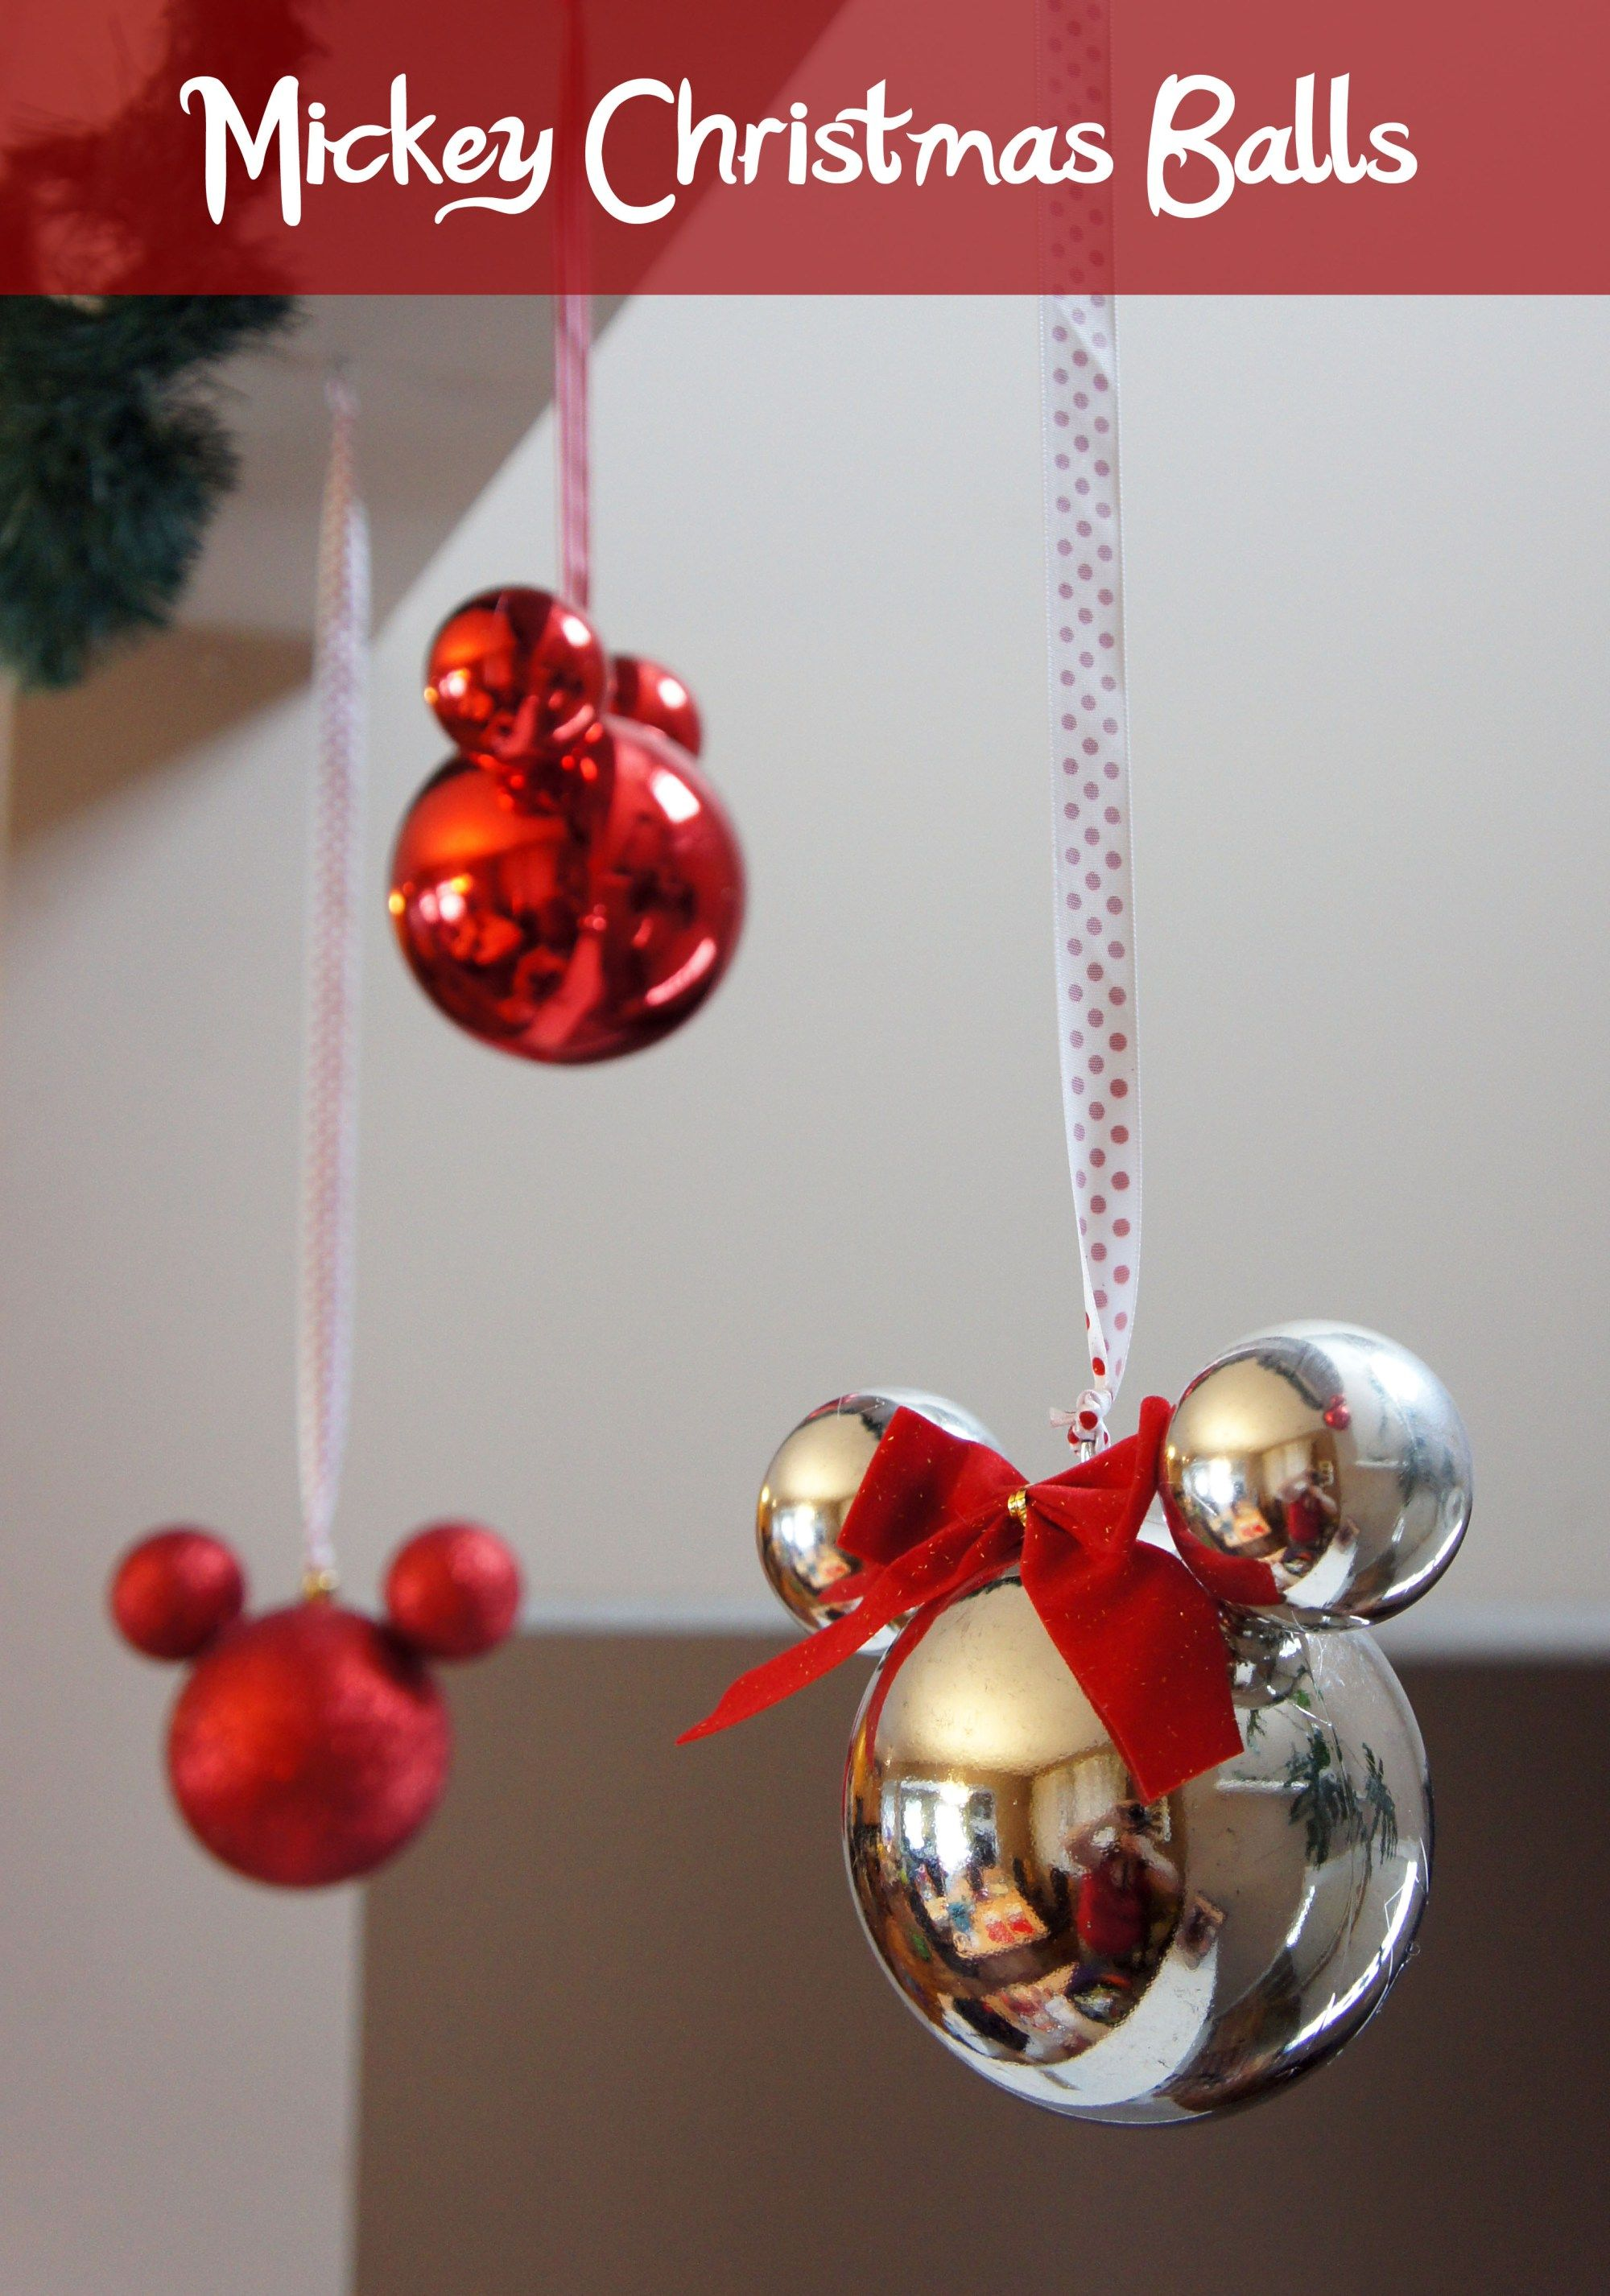 Weve got ears mickey christmas balls mickey mouse ornaments mickey christmas balls mickey christmasdisney christmas decorationschristmas solutioingenieria Image collections